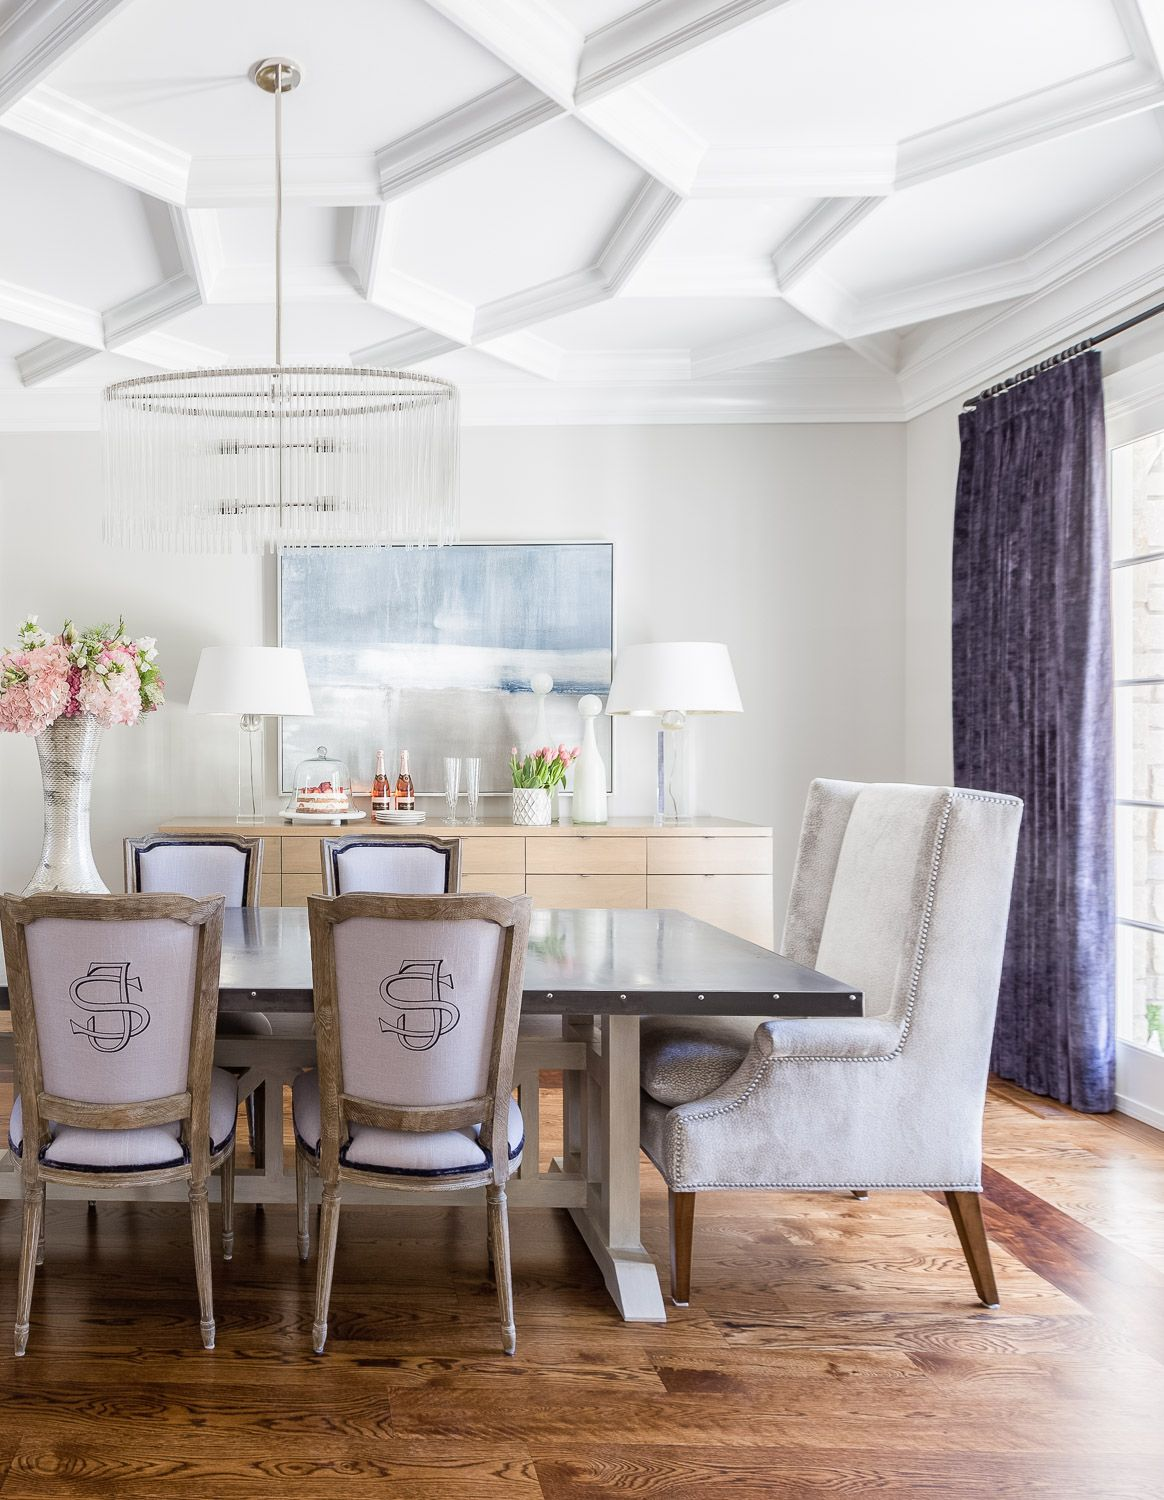 Sensational Bright White Dining Room Statement Chairs Build And Design Creativecarmelina Interior Chair Design Creativecarmelinacom